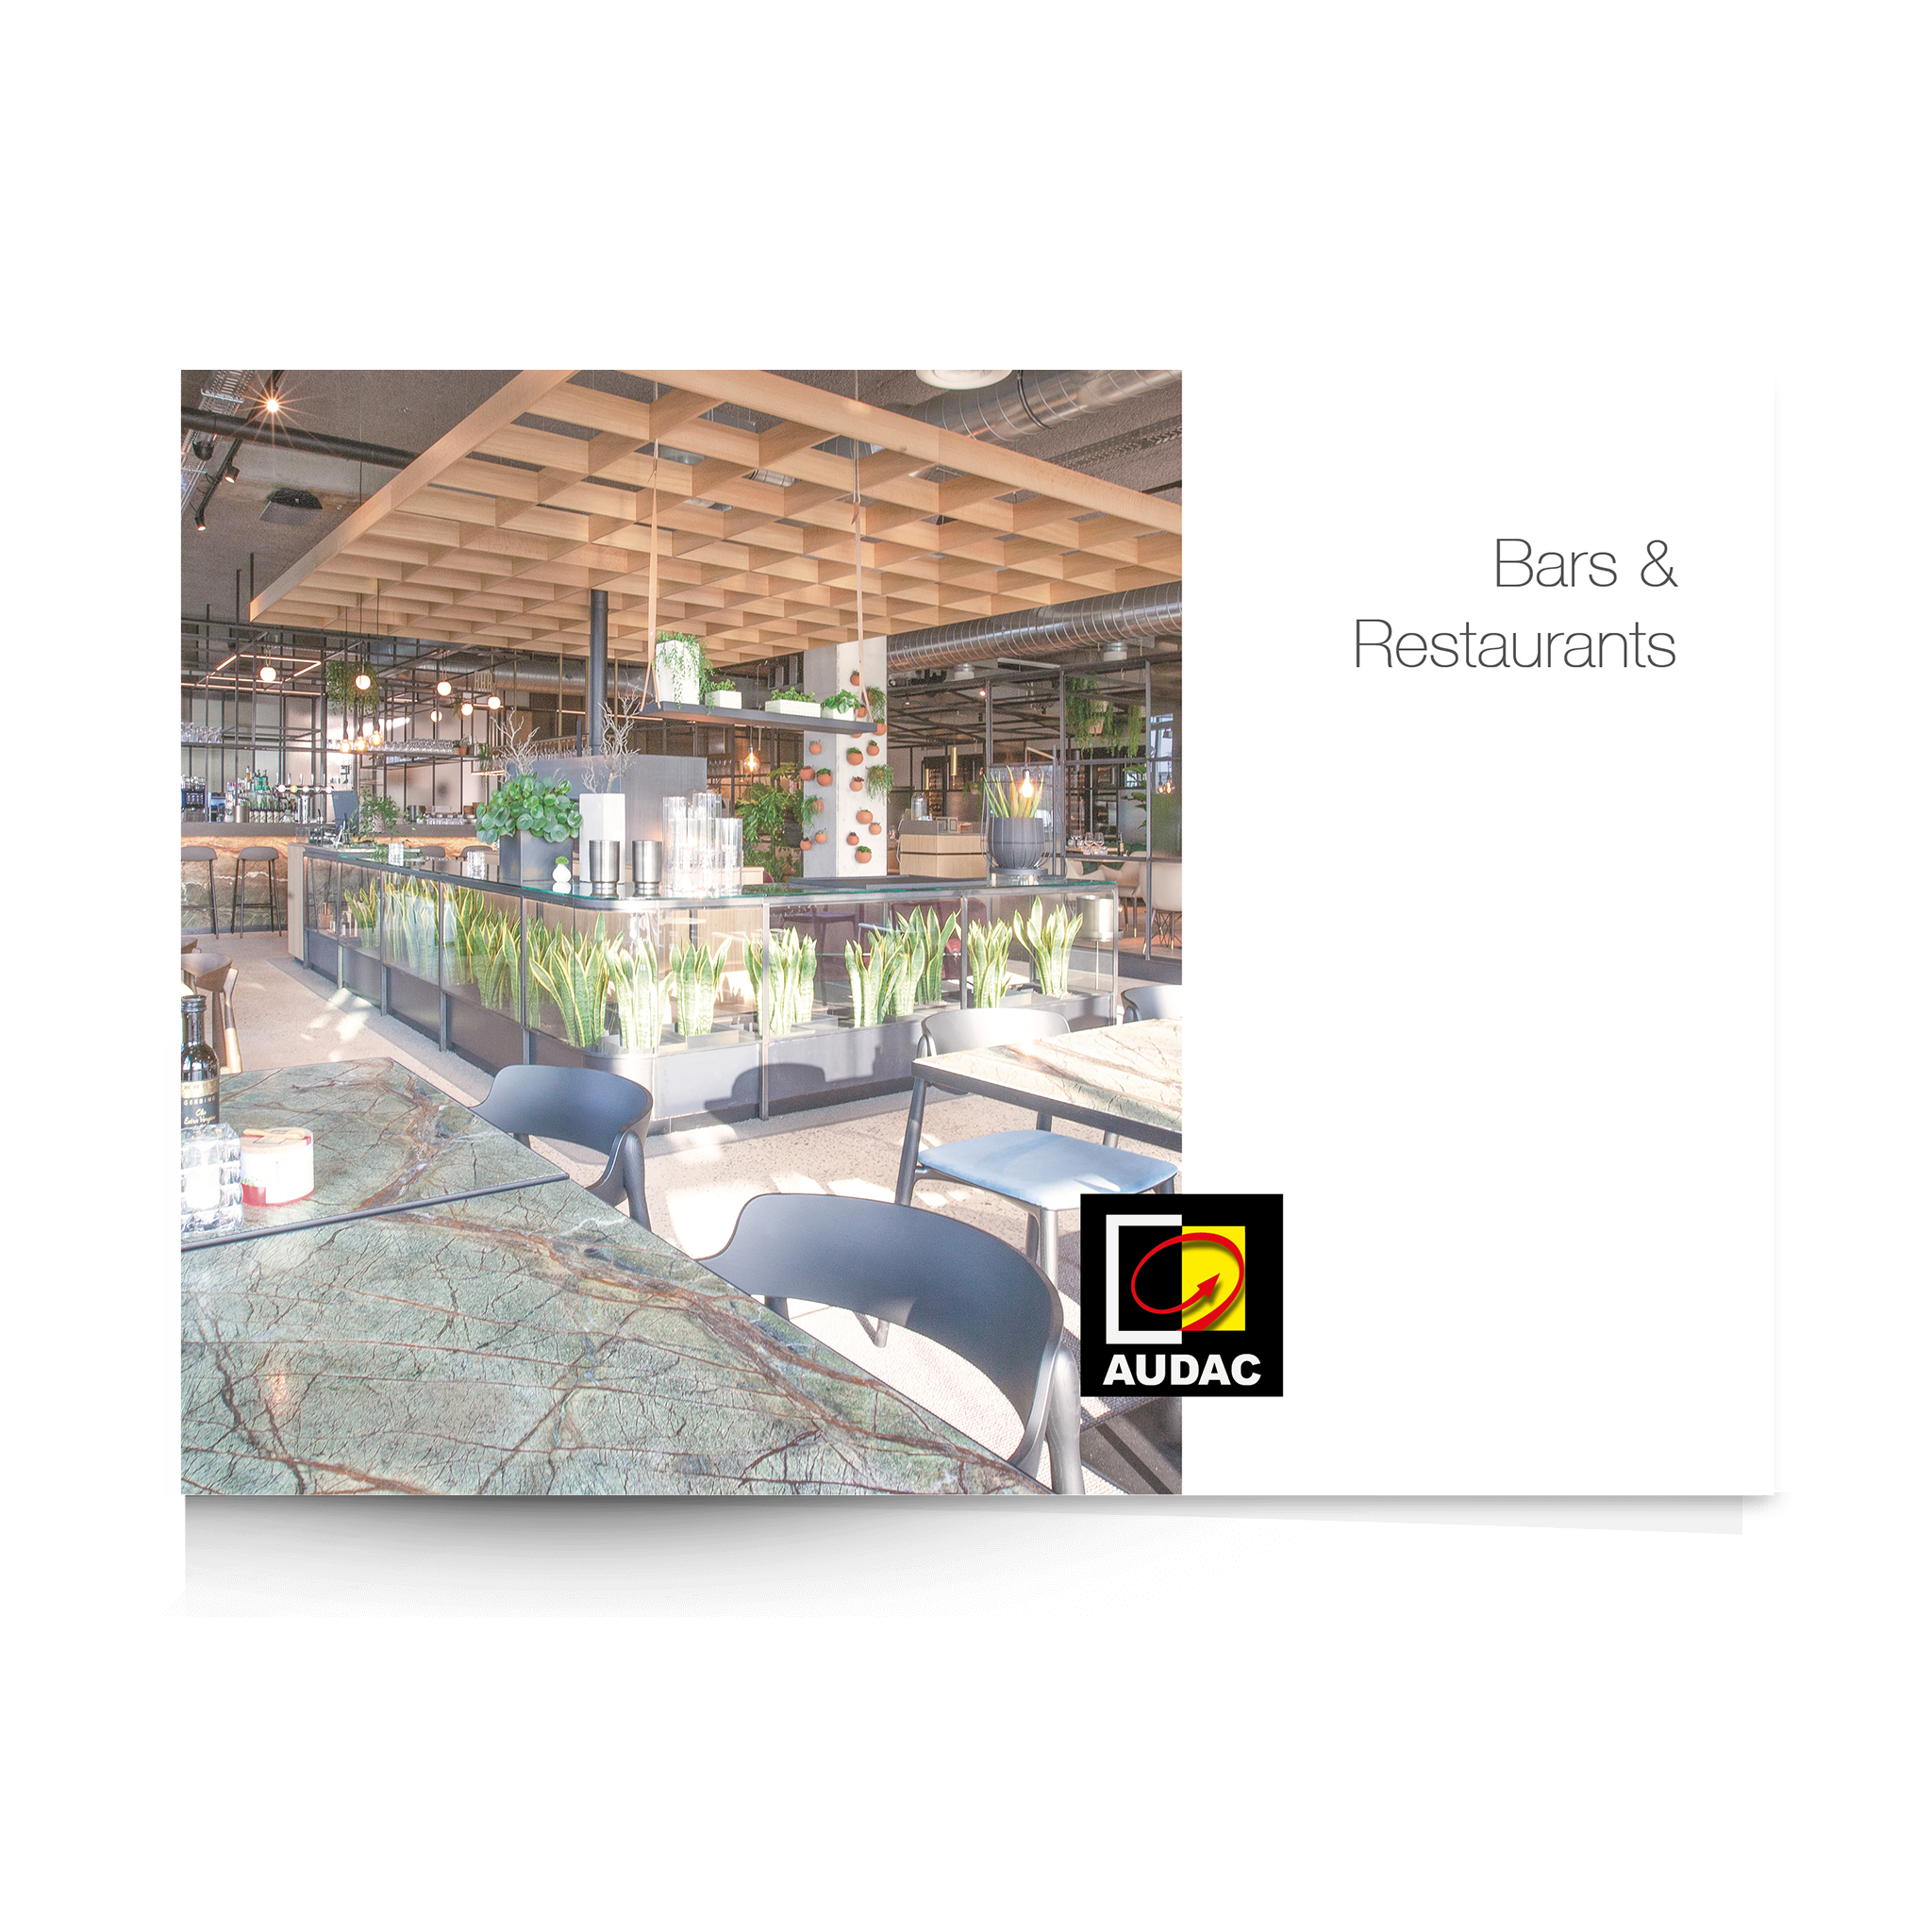 PROMO5211 - AUDAC References - Bars and Restaurants brochure